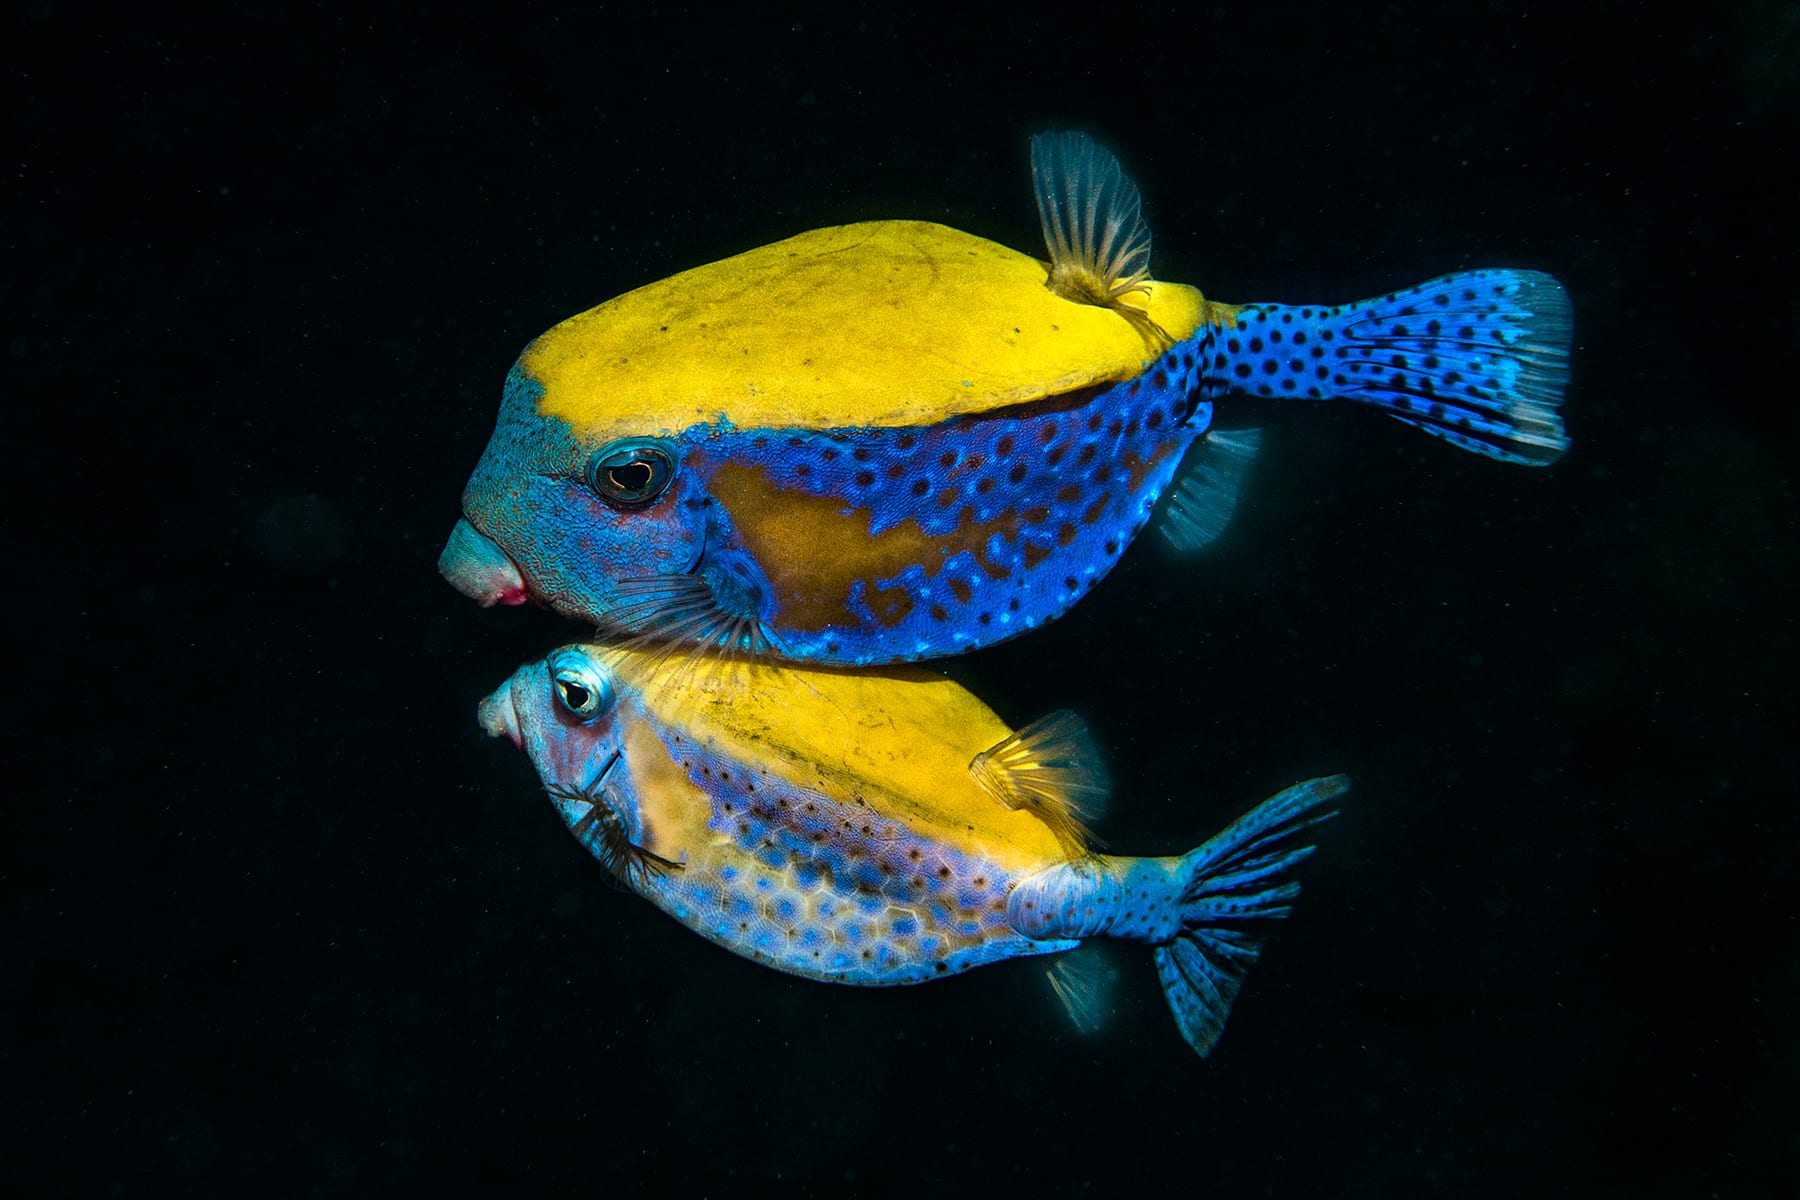 <p><b>Fishy Courtship</b><br /> A male (upper one) Bluetail trunkfish wooing the female (lower one) in the Gulf of Eilat and Aqaba, northern Red Sea.</p> <p> While snorkeling and freediving, waiting for corals to spawn, I lifted my flashlight towards the open sea that simply looks like black space at night. Suddenly, I noticed a couple of shadows moving rapidly in the distance. I turned my lights off so I can get closer to these shadows without scaring them away. The moon was shining bright that day so once I got closer, I could vaguely see that it's a couple of fish in the midst of their love dance: The male swimming fast towards the female, bumping into her, pushing and biting, but in the end, they stayed together. An aggressive dance of courtship and mating.  </p><p> I turn on a small light to try and follow these fish and take a photo and the fish are swimming further away from the reef and dragging me to the open sea. As if it was not challenging enough, I was with a macro lens that day and hardly managed to focus right on these fast-moving fish. I took a couple of photos, which turned out just terrible and out of focus, and the fish kept on swimming away. I decided to give it one more shot. I turned off the lights again and swam in the darkness towards the cute fish. This time, I set in advance all the camera and strobes settings, freedive to about 10 feet depth and just float in this black space next to the fish until I feel that the angle is good, the distance is right, that's the right moment, and… One shot turned out good. </p>